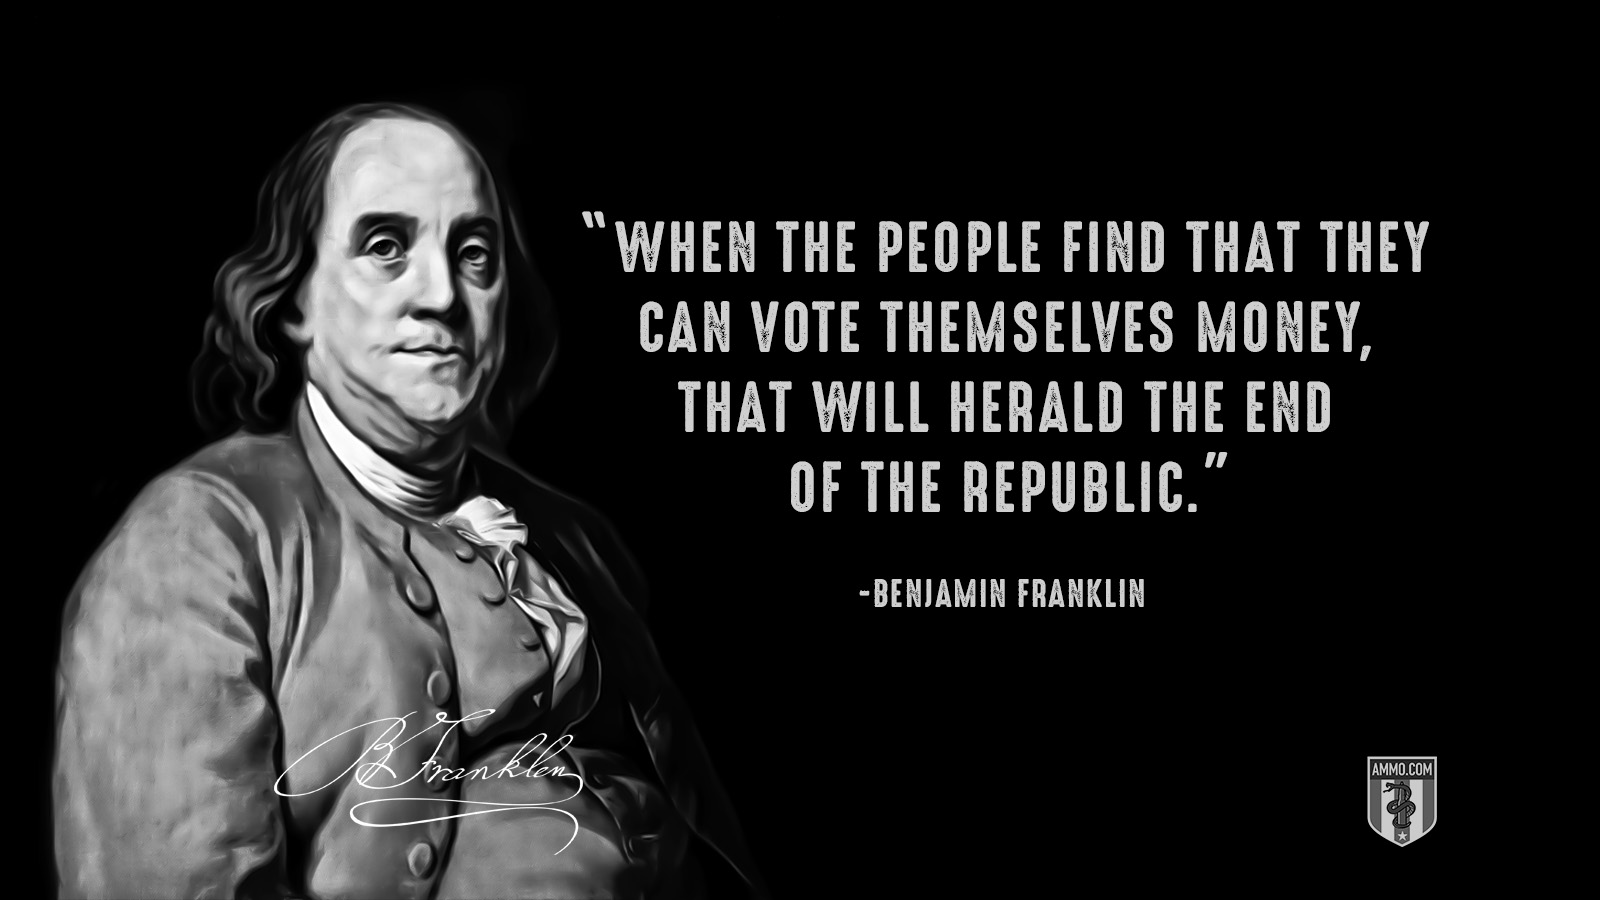 """When the people find that they can vote themselves money, that will herald the end of the republic."" - Benjamin Franklin"